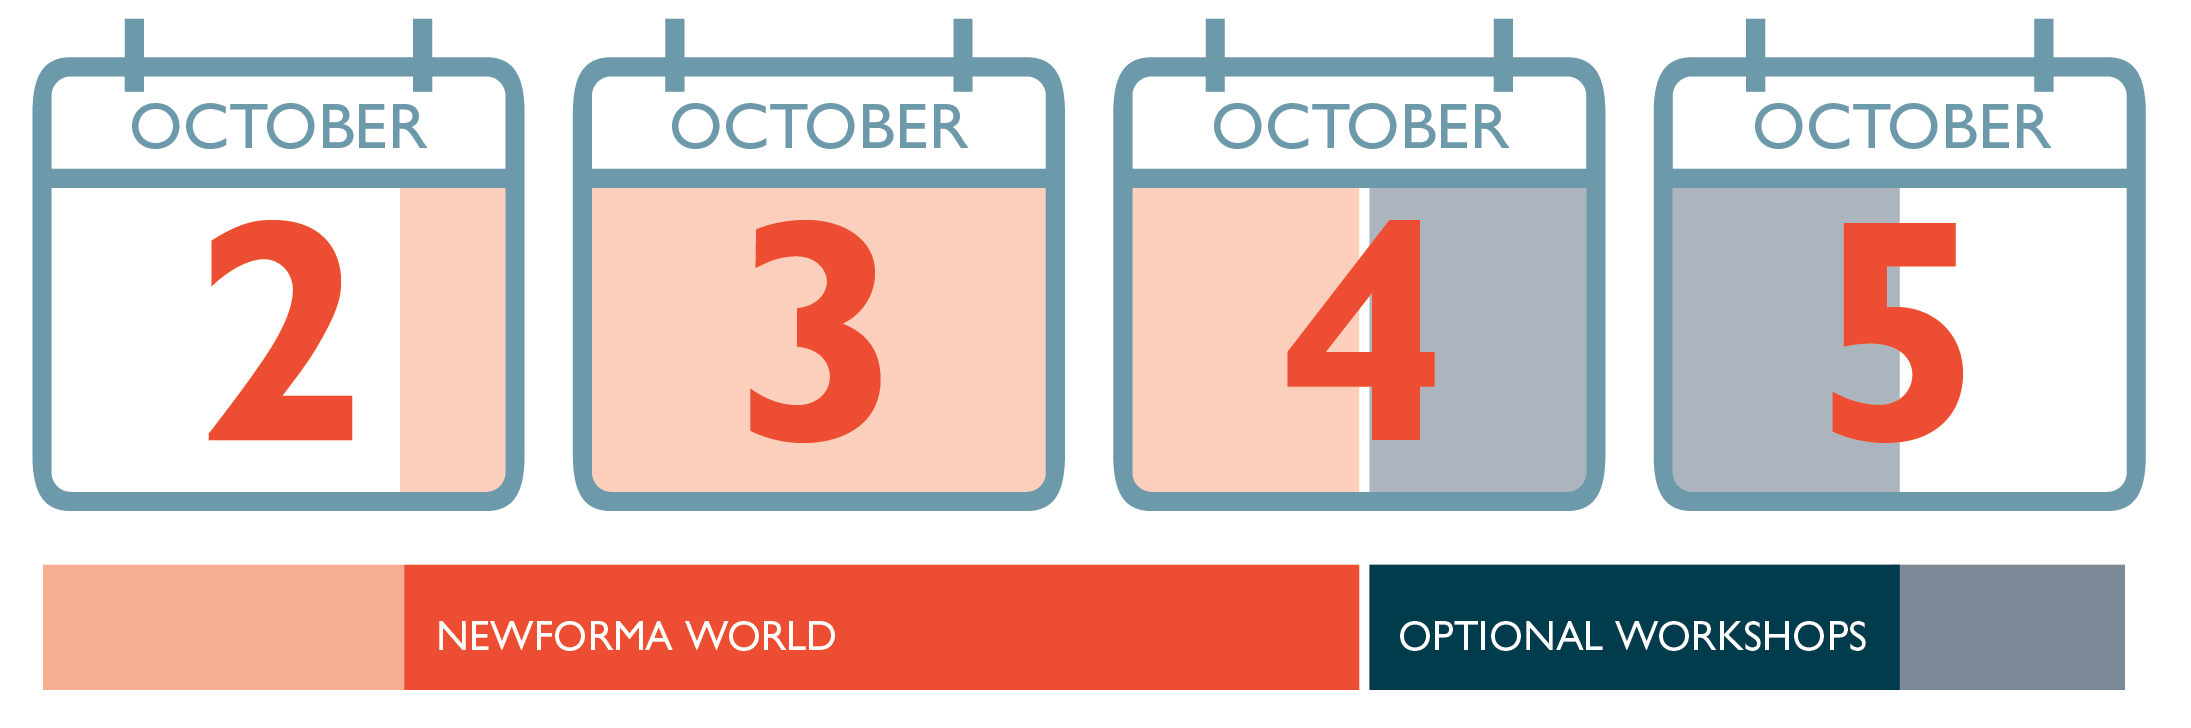 NewformaWorld calendaricon